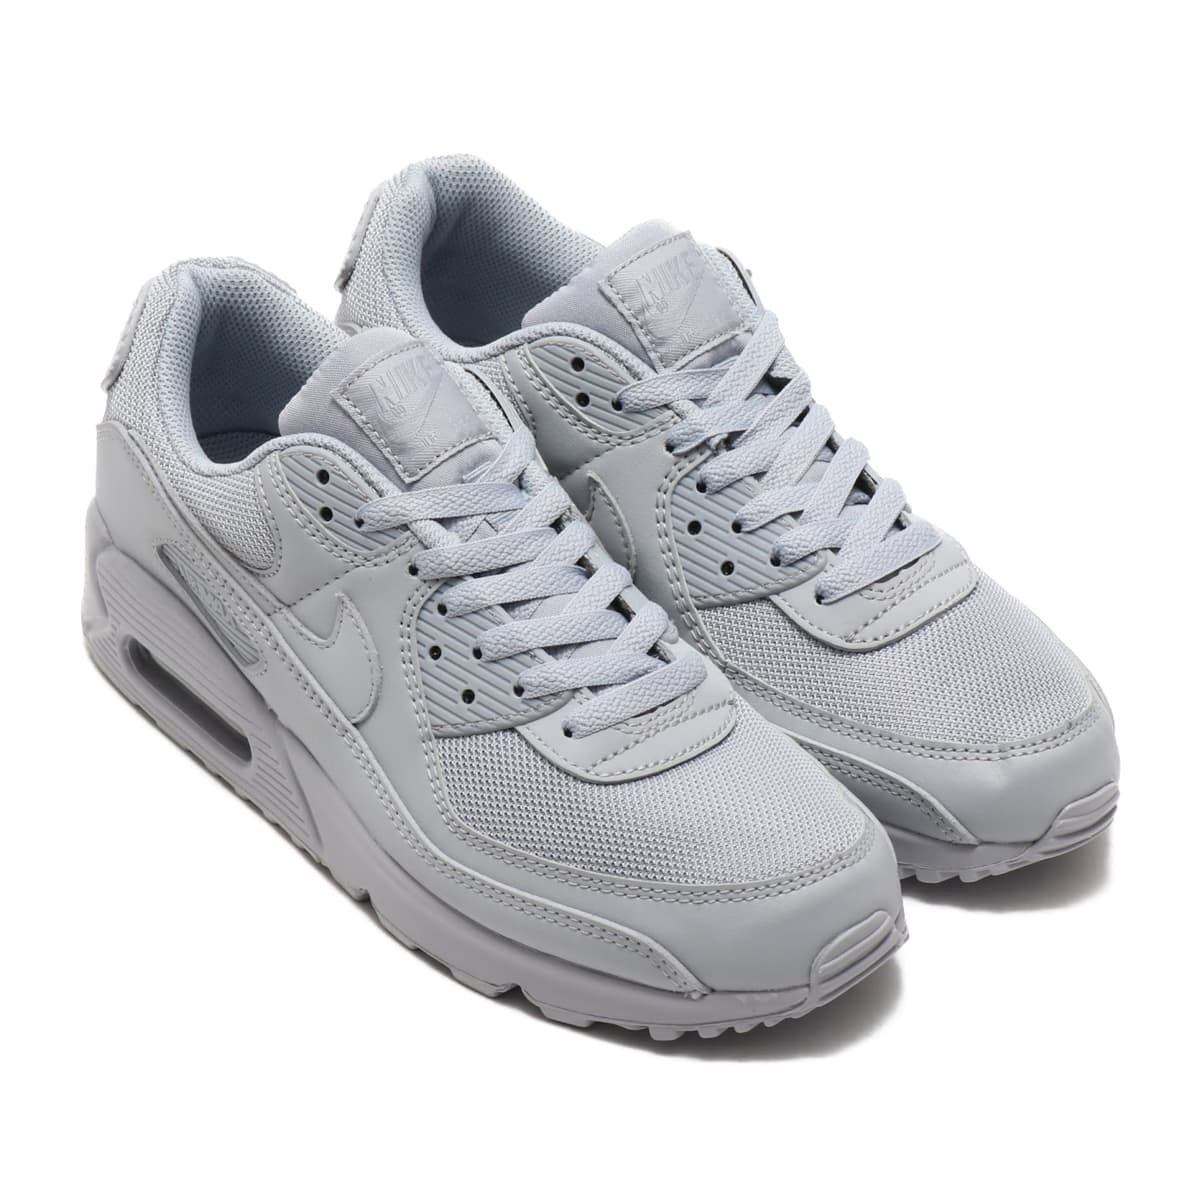 NIKE AIR MAX 90 WOLF GREY/WOLF GREY-WOLF GREY-BLACK 20SP-S_photo_large